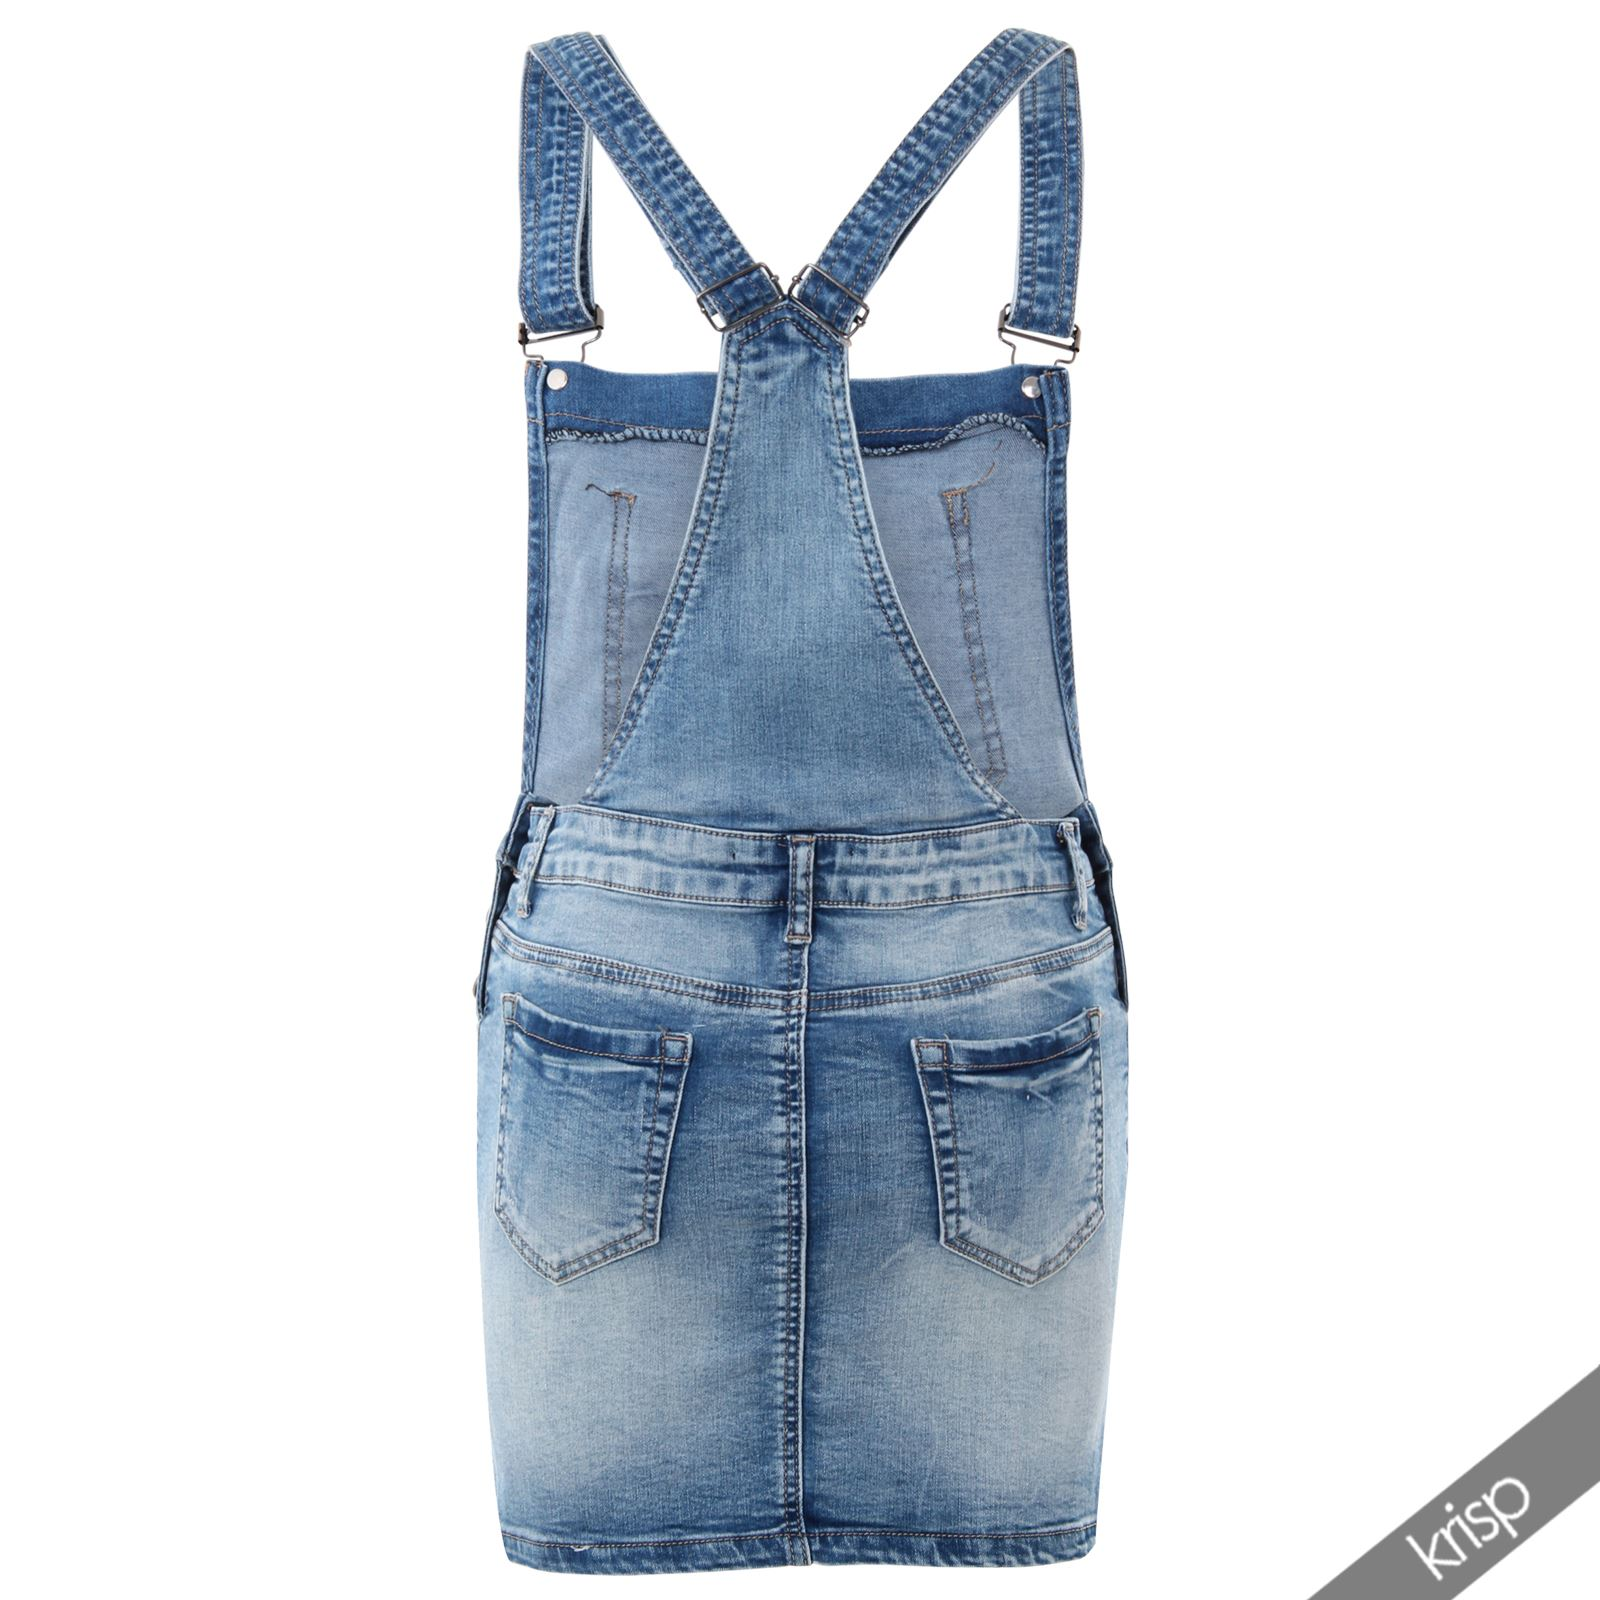 WOMENS; Denim; Dungarees; Dungarees Denim Jeans Denim Skirts Denim Dresses Denim Shirts & Tops Jeggings Denim Jackets Denim Shorts Sale Denim 1 of 1 1 Frayed Edge Denim Dungaree Shorts £ Boyfriend Denim Dungarees £ Black Denim Dungaree Pinafore Dress £ Slim Fit Distressed Denim Dungarees £ Denim Dungarees.